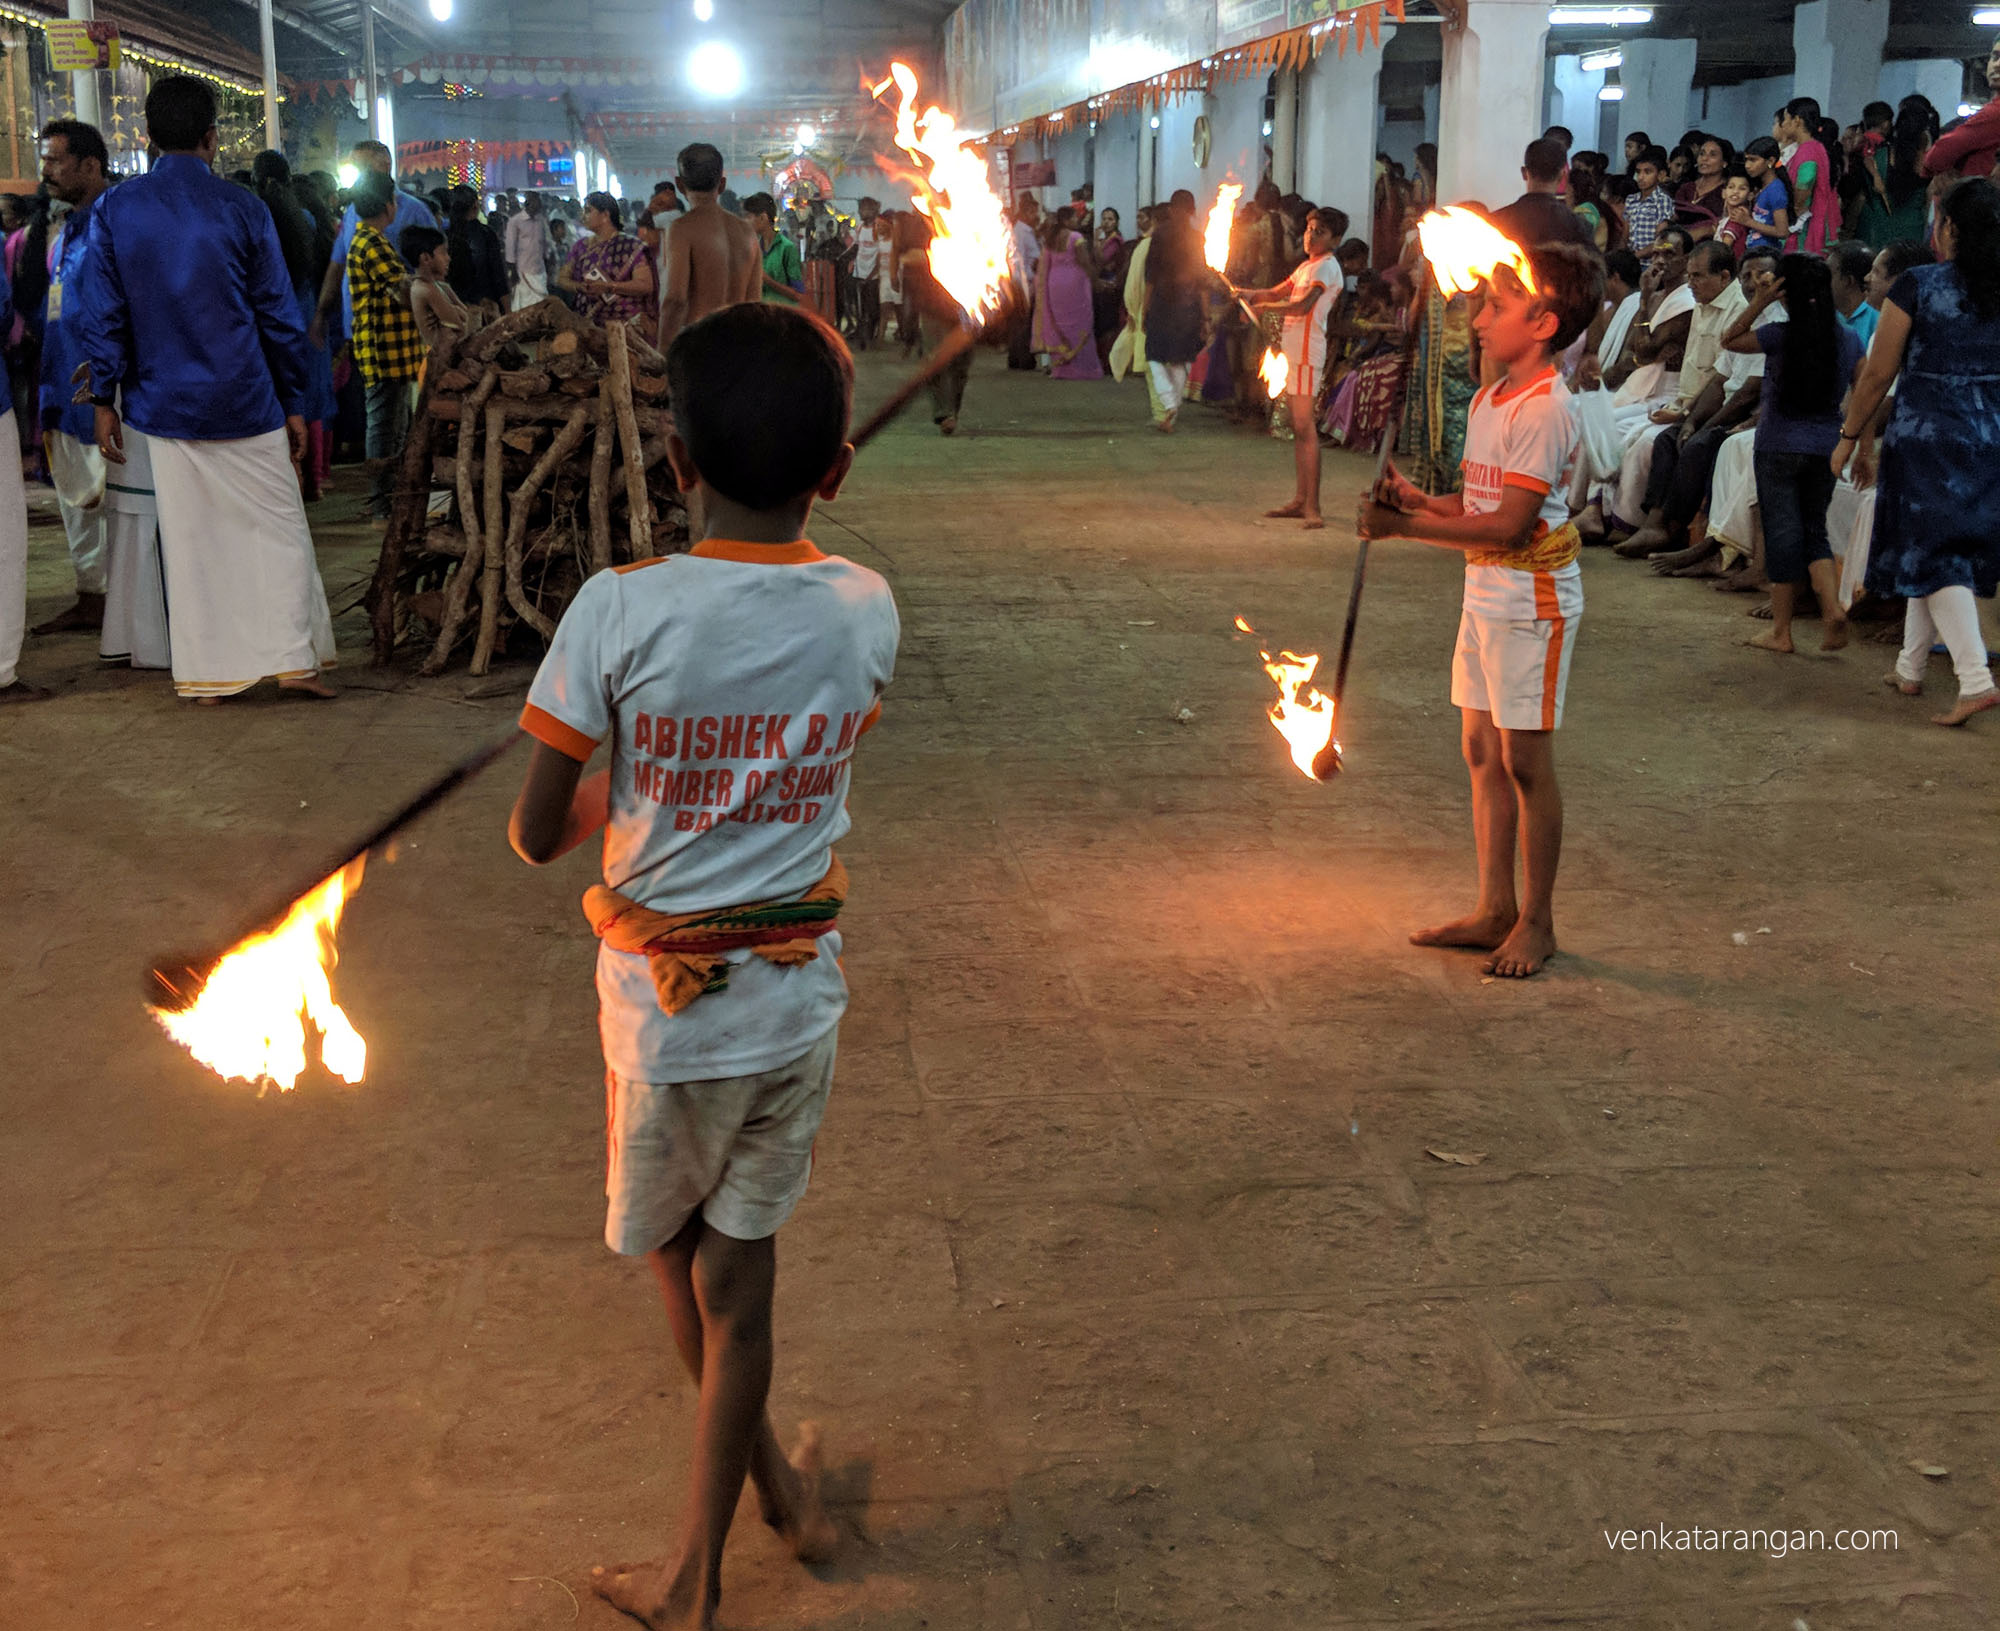 Local school kids showing their traditional self-defence art with lighted sticks